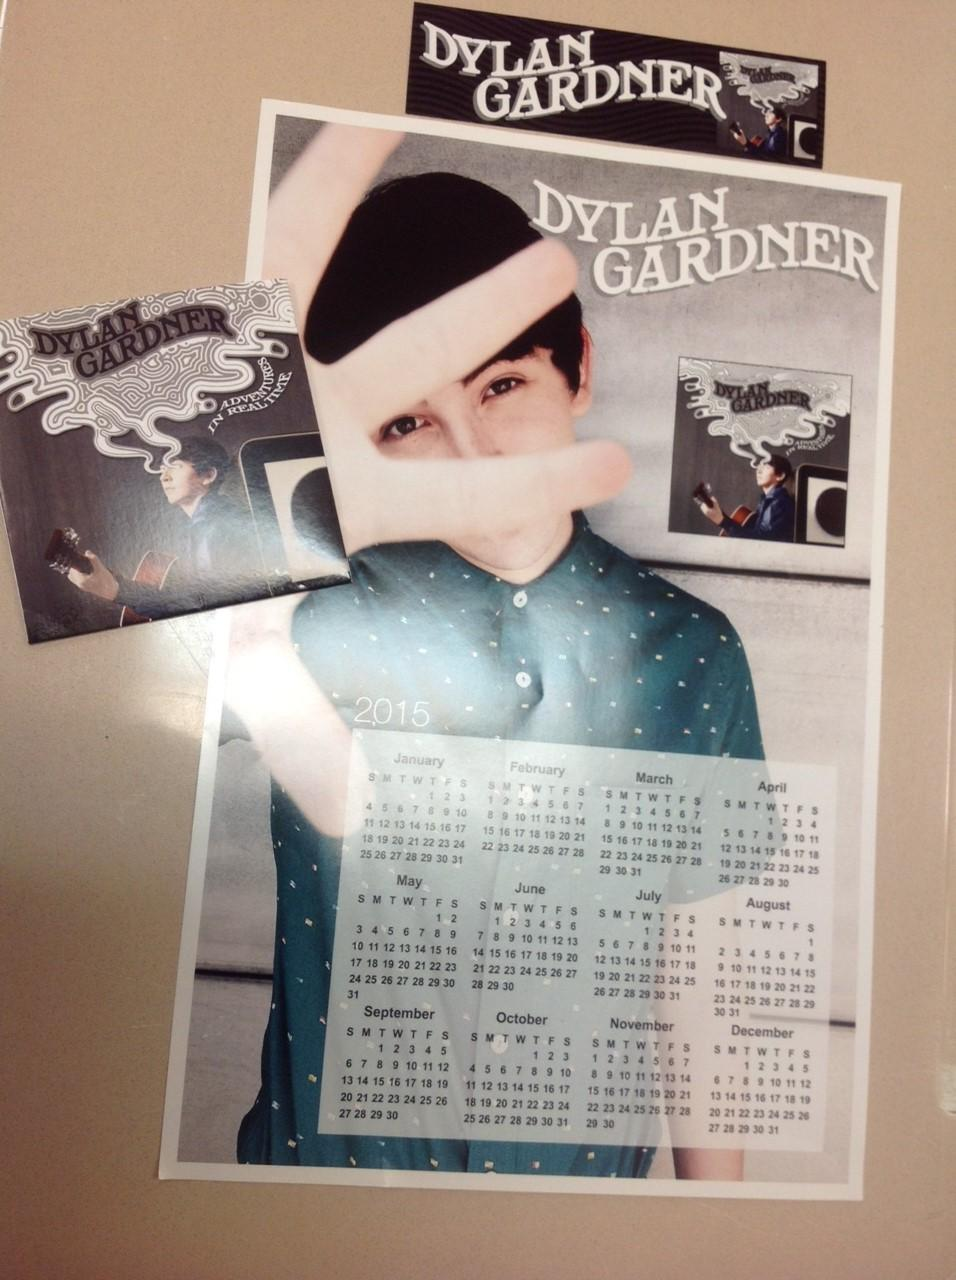 Dylan Gardner promotional material Photo by Jeanne Hanigan